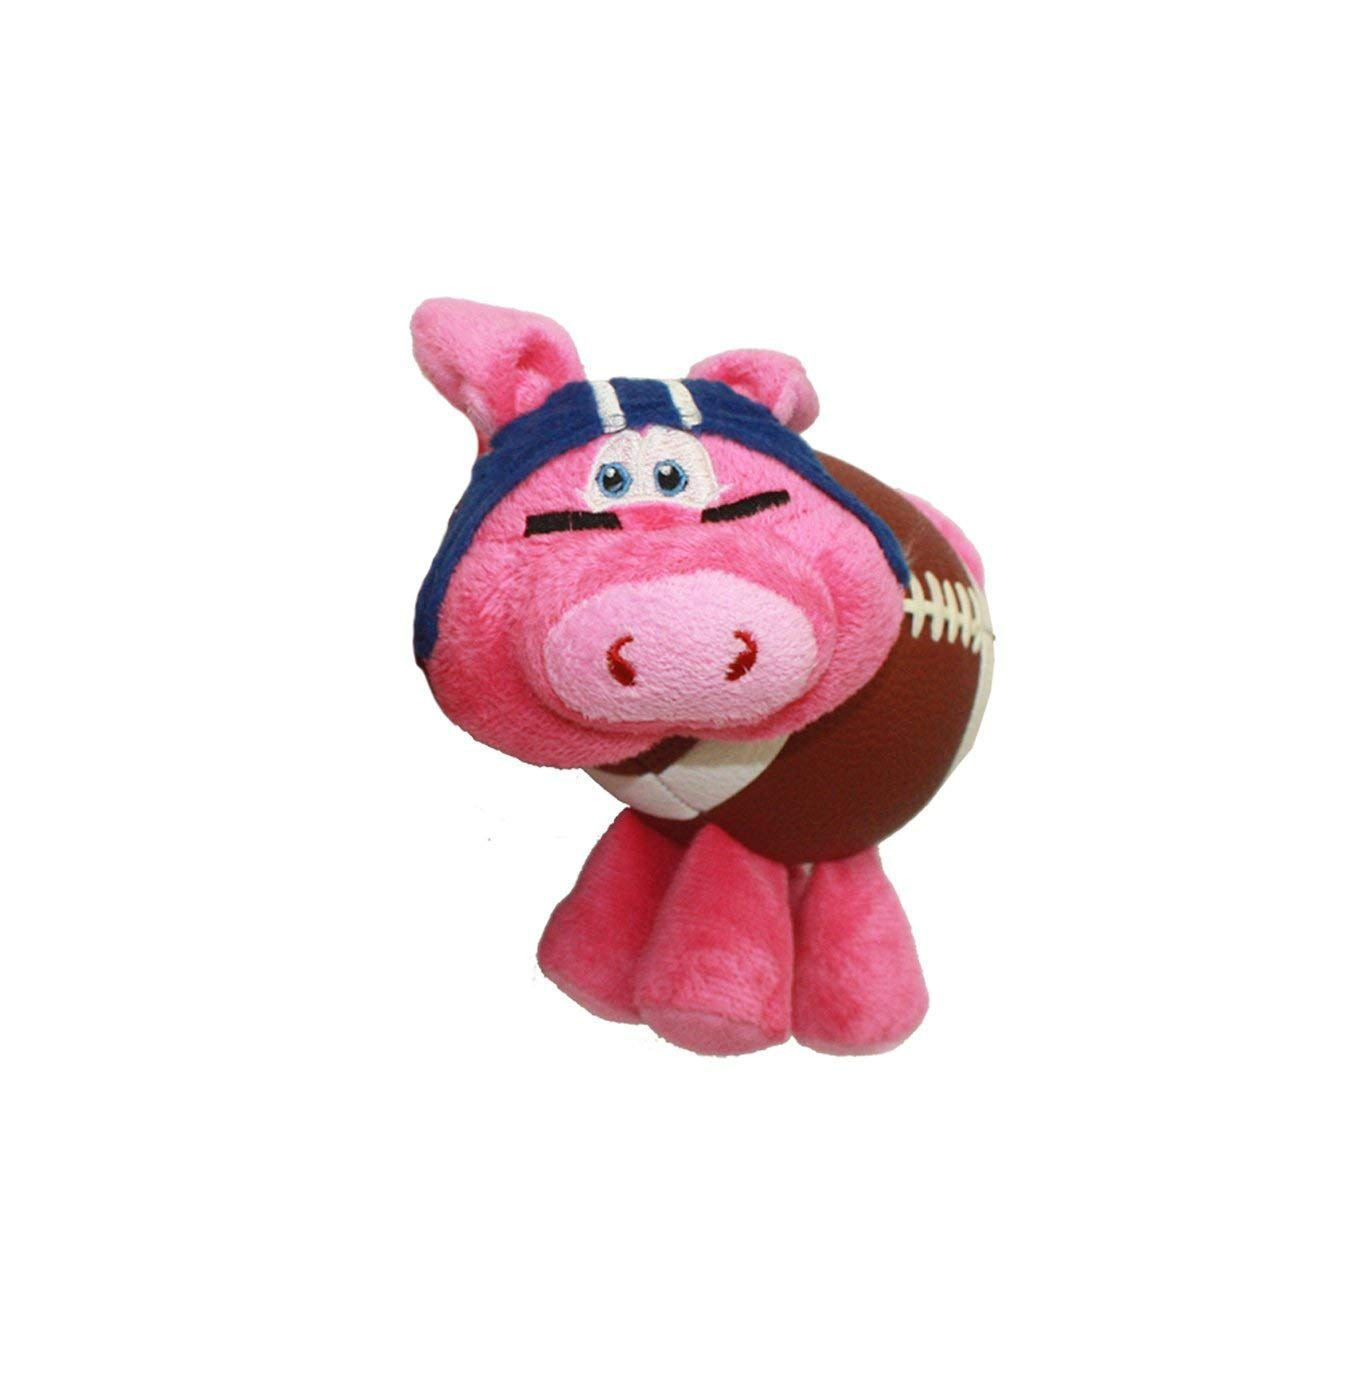 Multipet Pig Skins Plush Football Dog Toy 8 Colors Vary Read